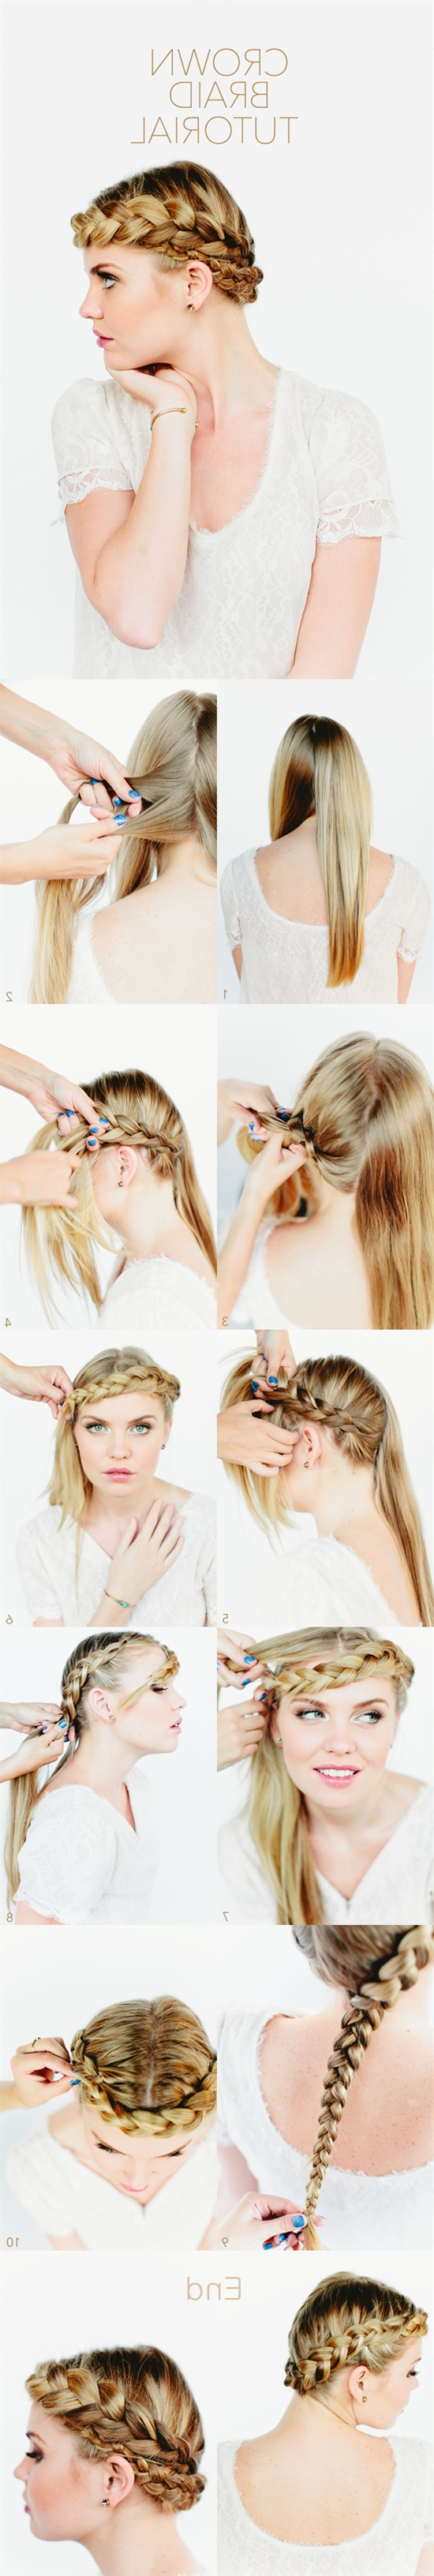 6 Chic Braided Crown Hairstyles For Girls'daily Creation At Home Throughout Braided Crown Updo Hairstyles (View 11 of 15)